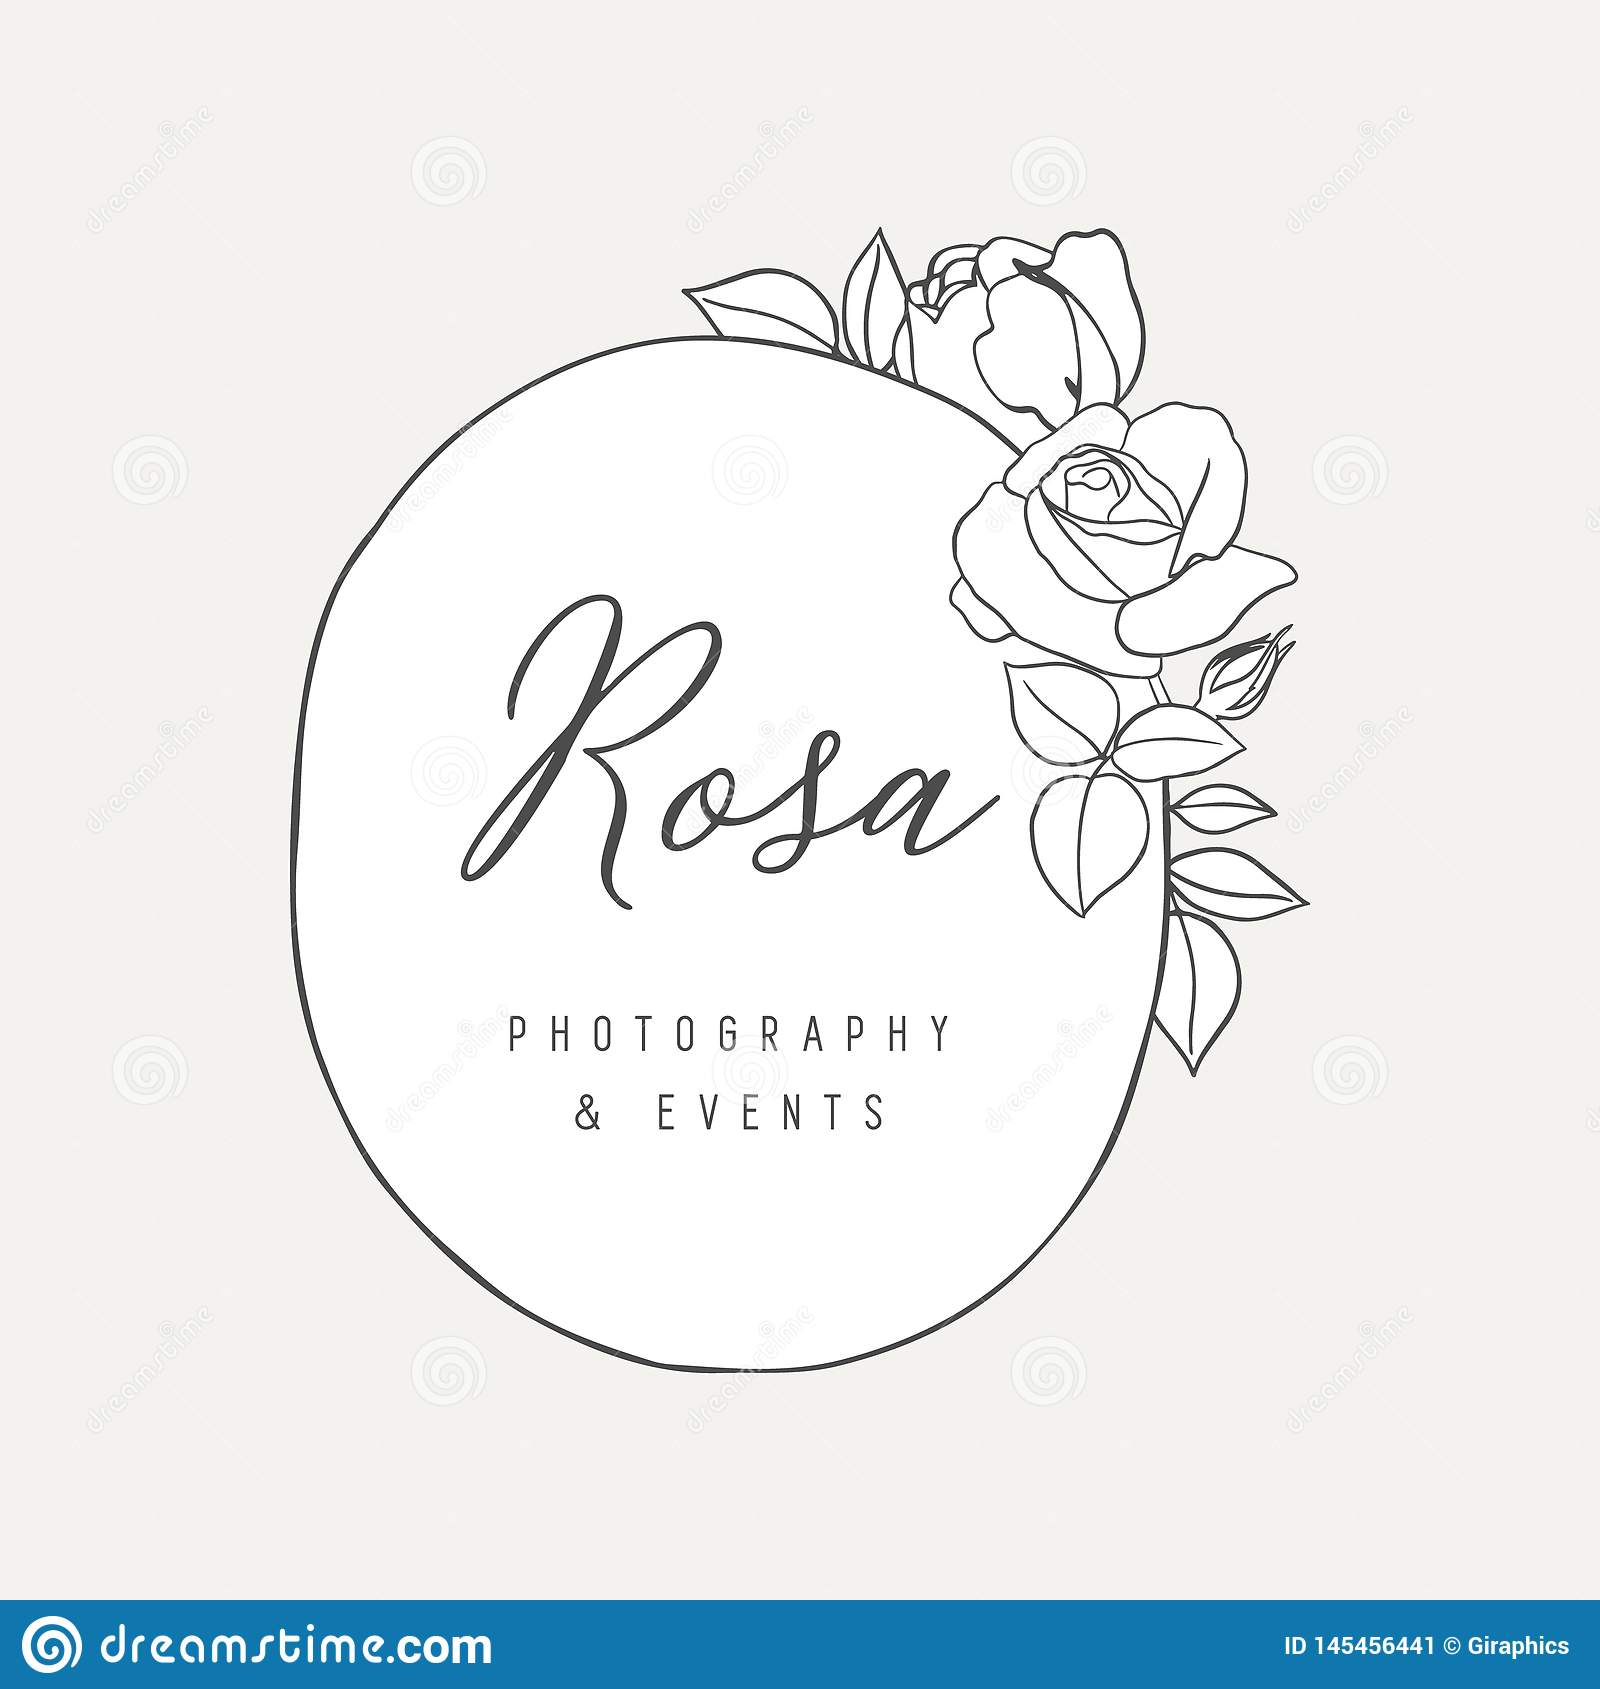 Botanical Rose Logo Illustration Stock Vector Illustration